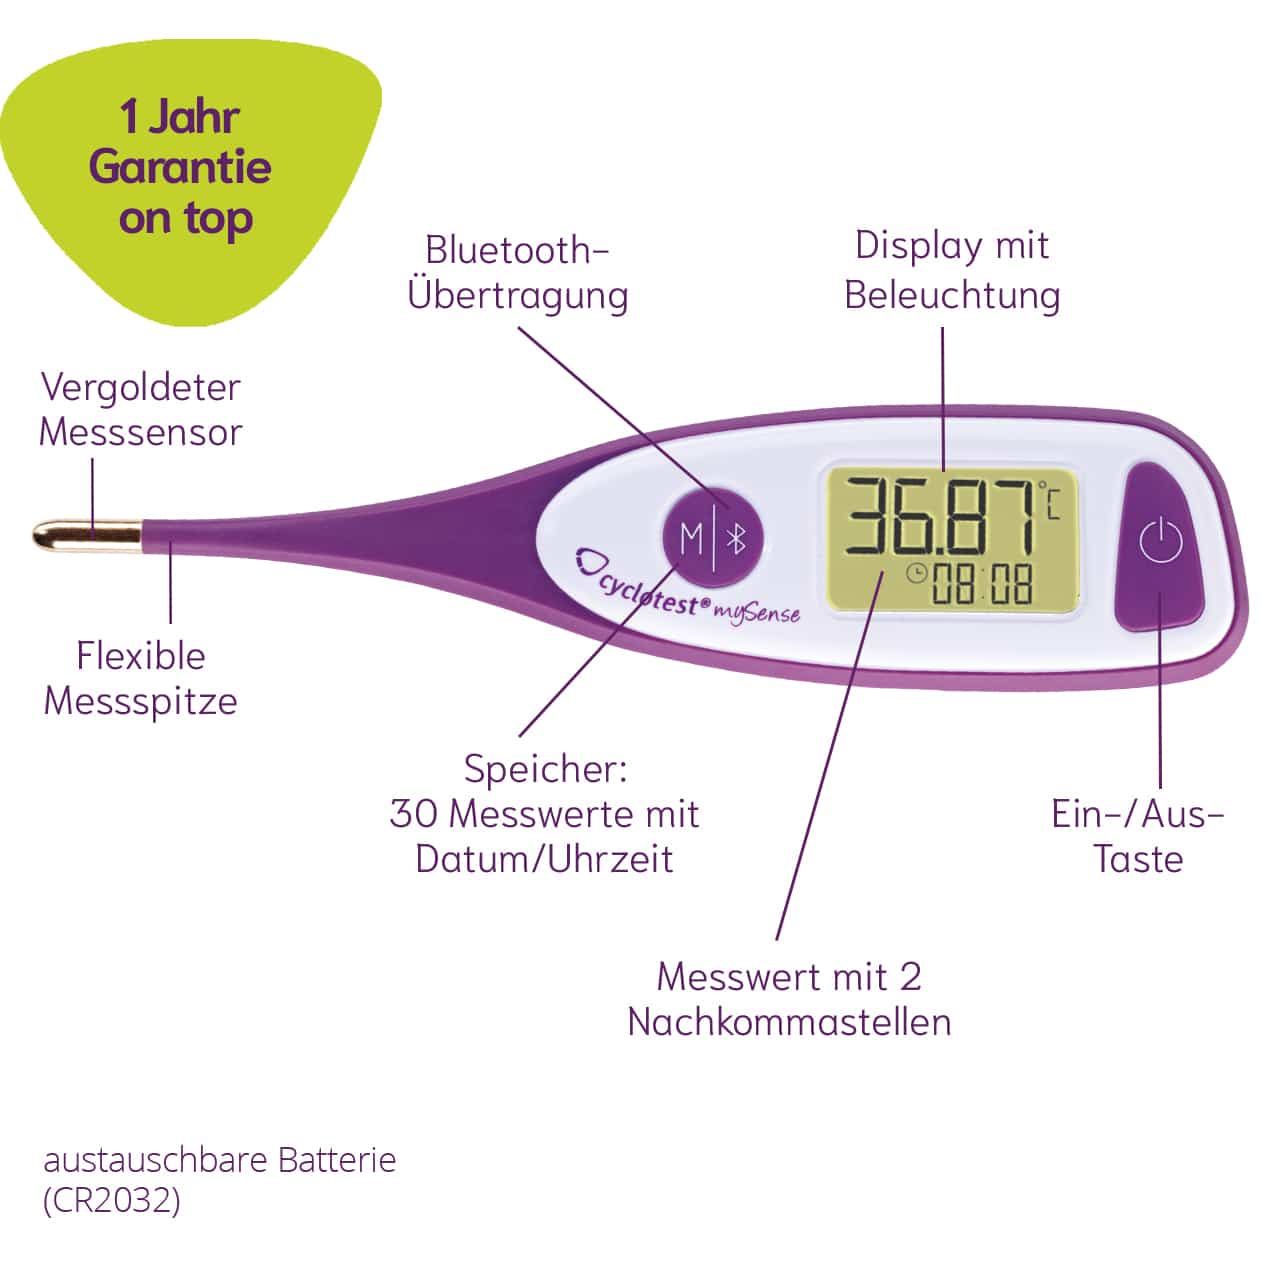 Bestandteile des cyclotest mySense Basalthermometers